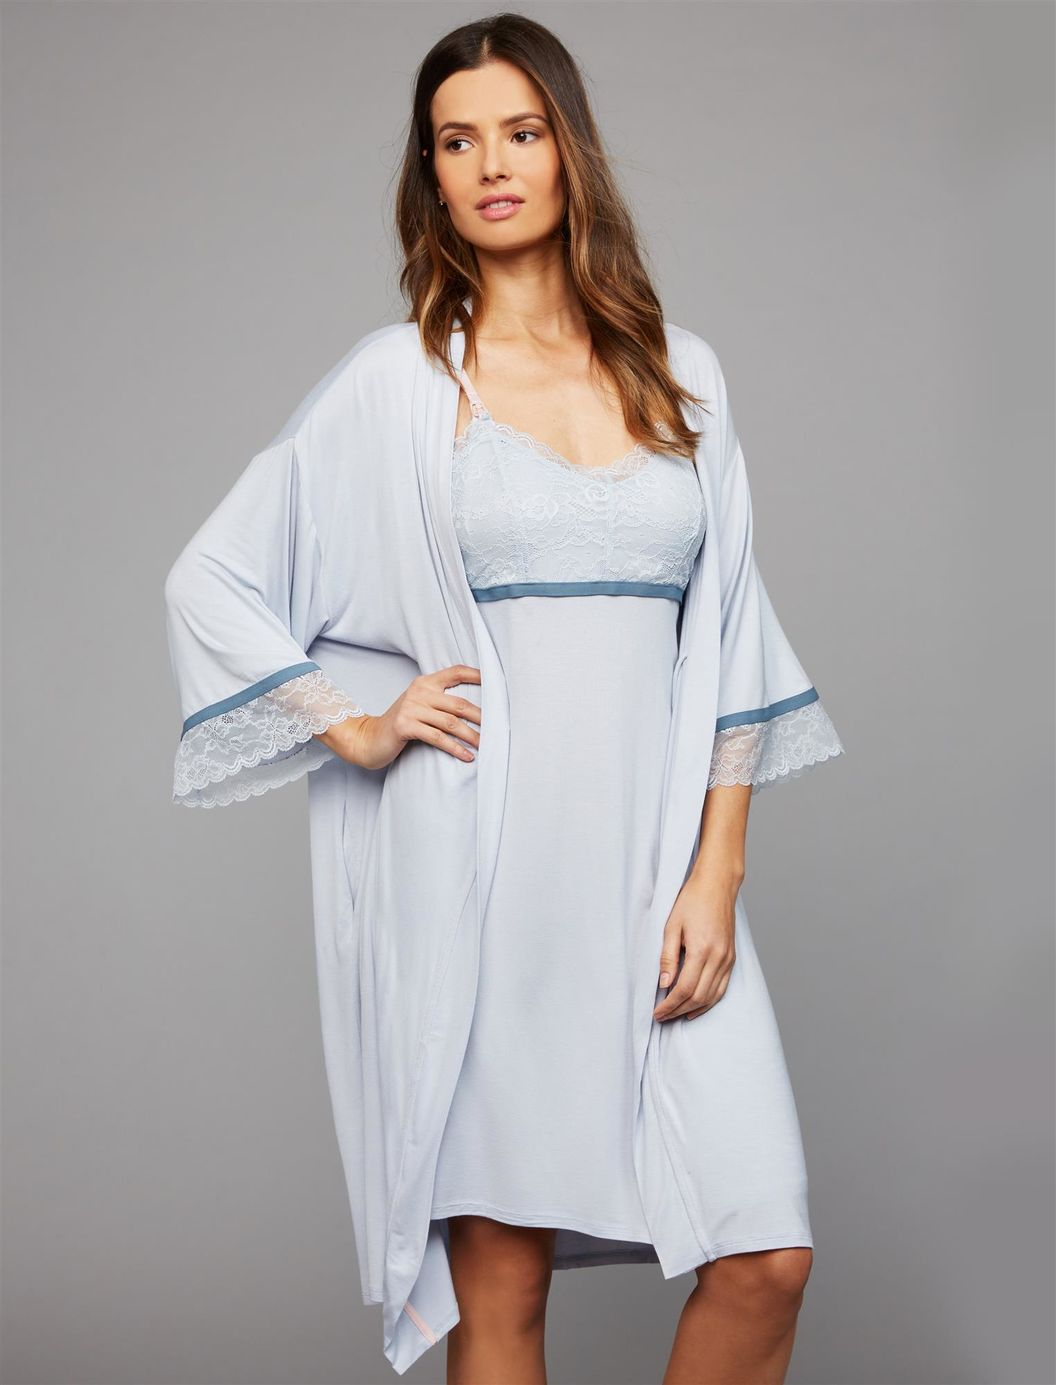 Destination Maternity Nursing Nightgown And Robe Set